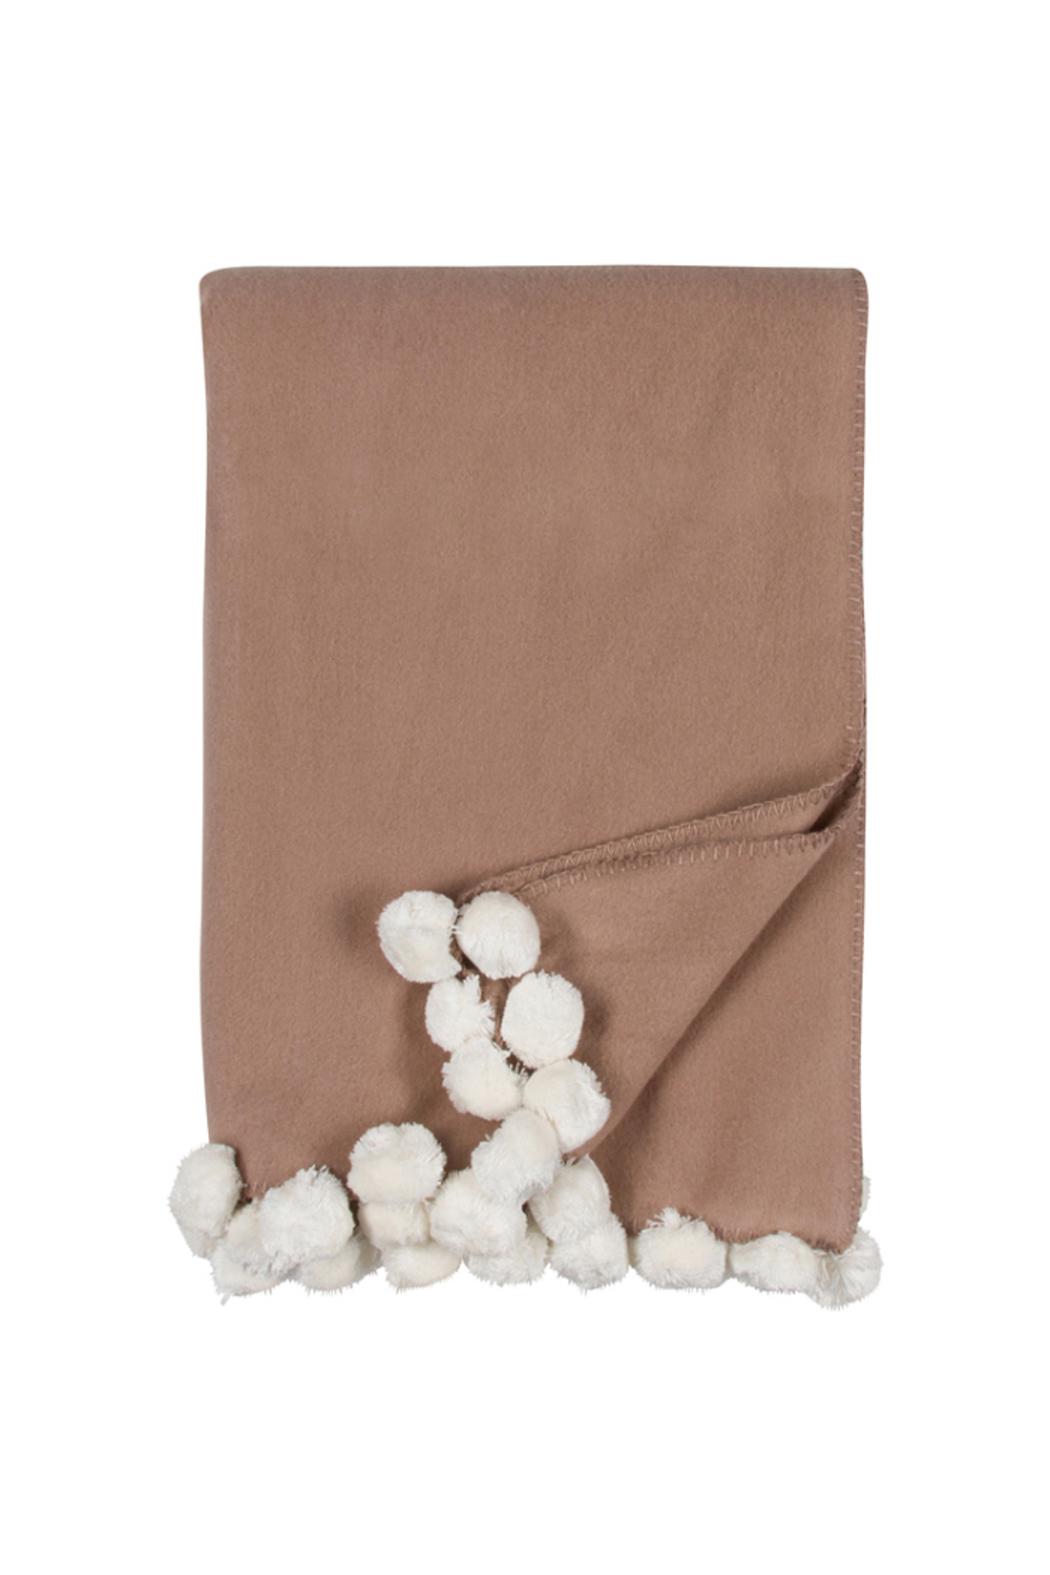 The Birds Nest LUXXE POM POM THROW - SAND IVORY - Main Image